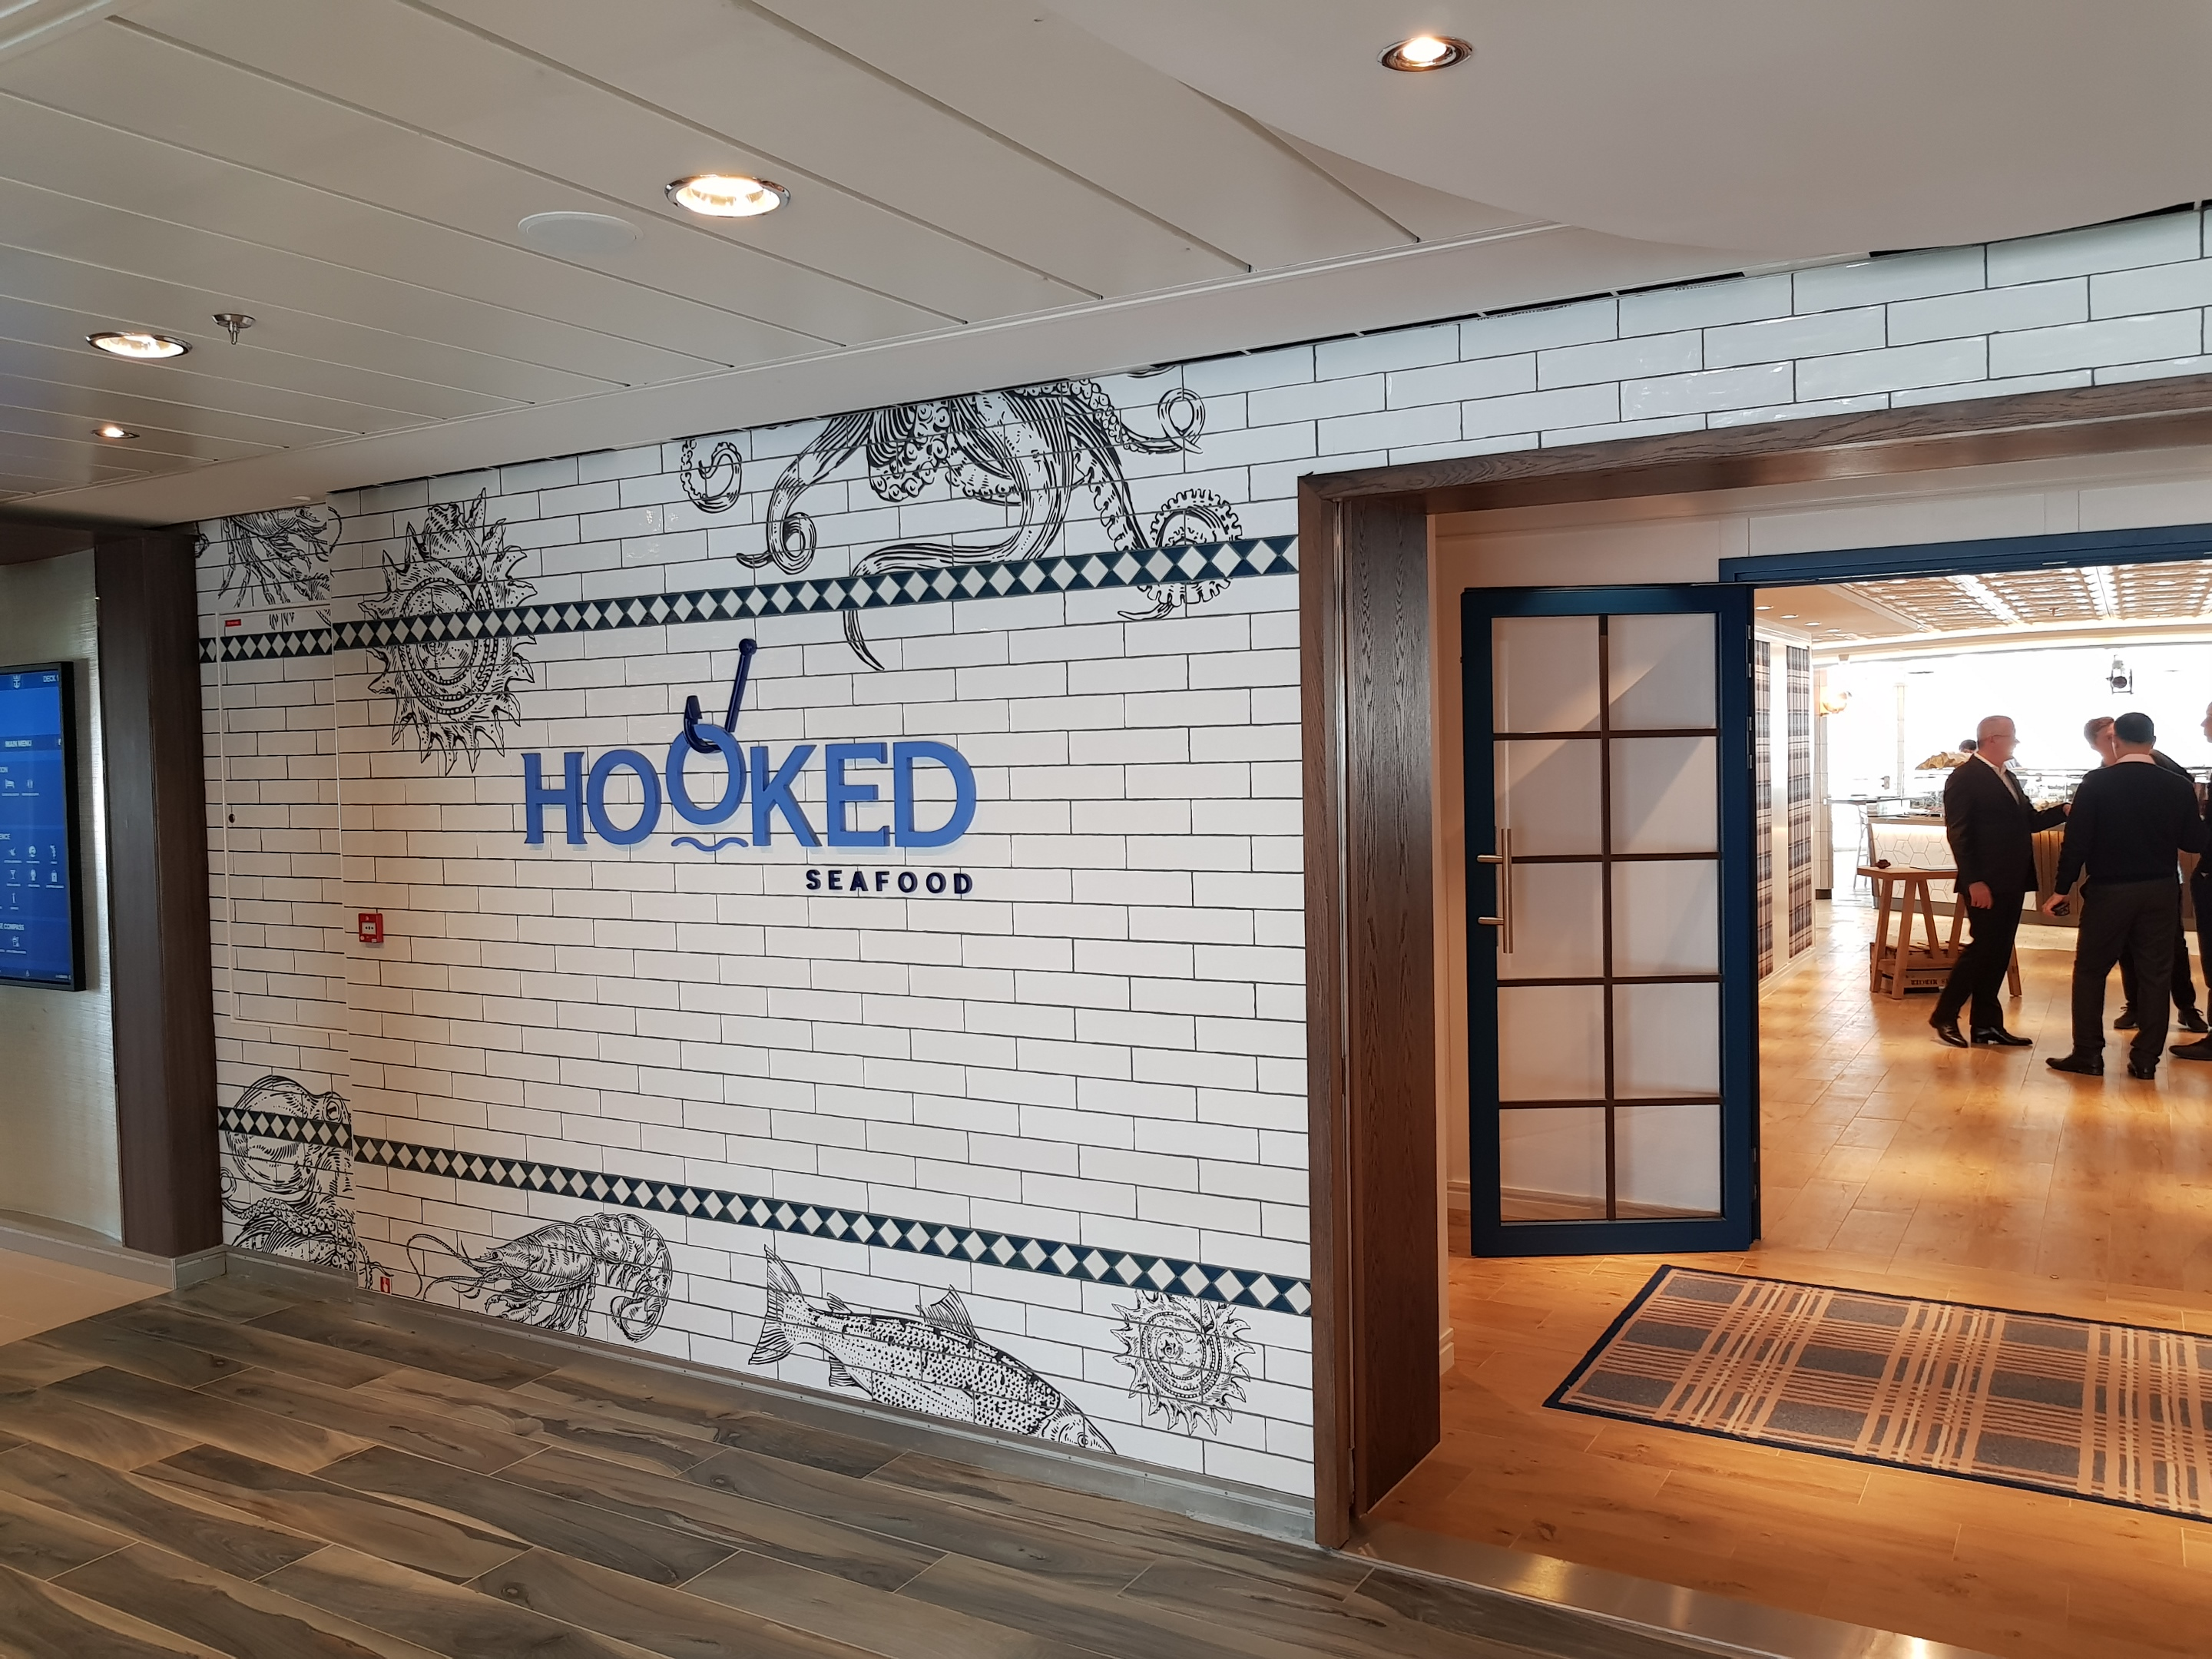 Hooked tiles